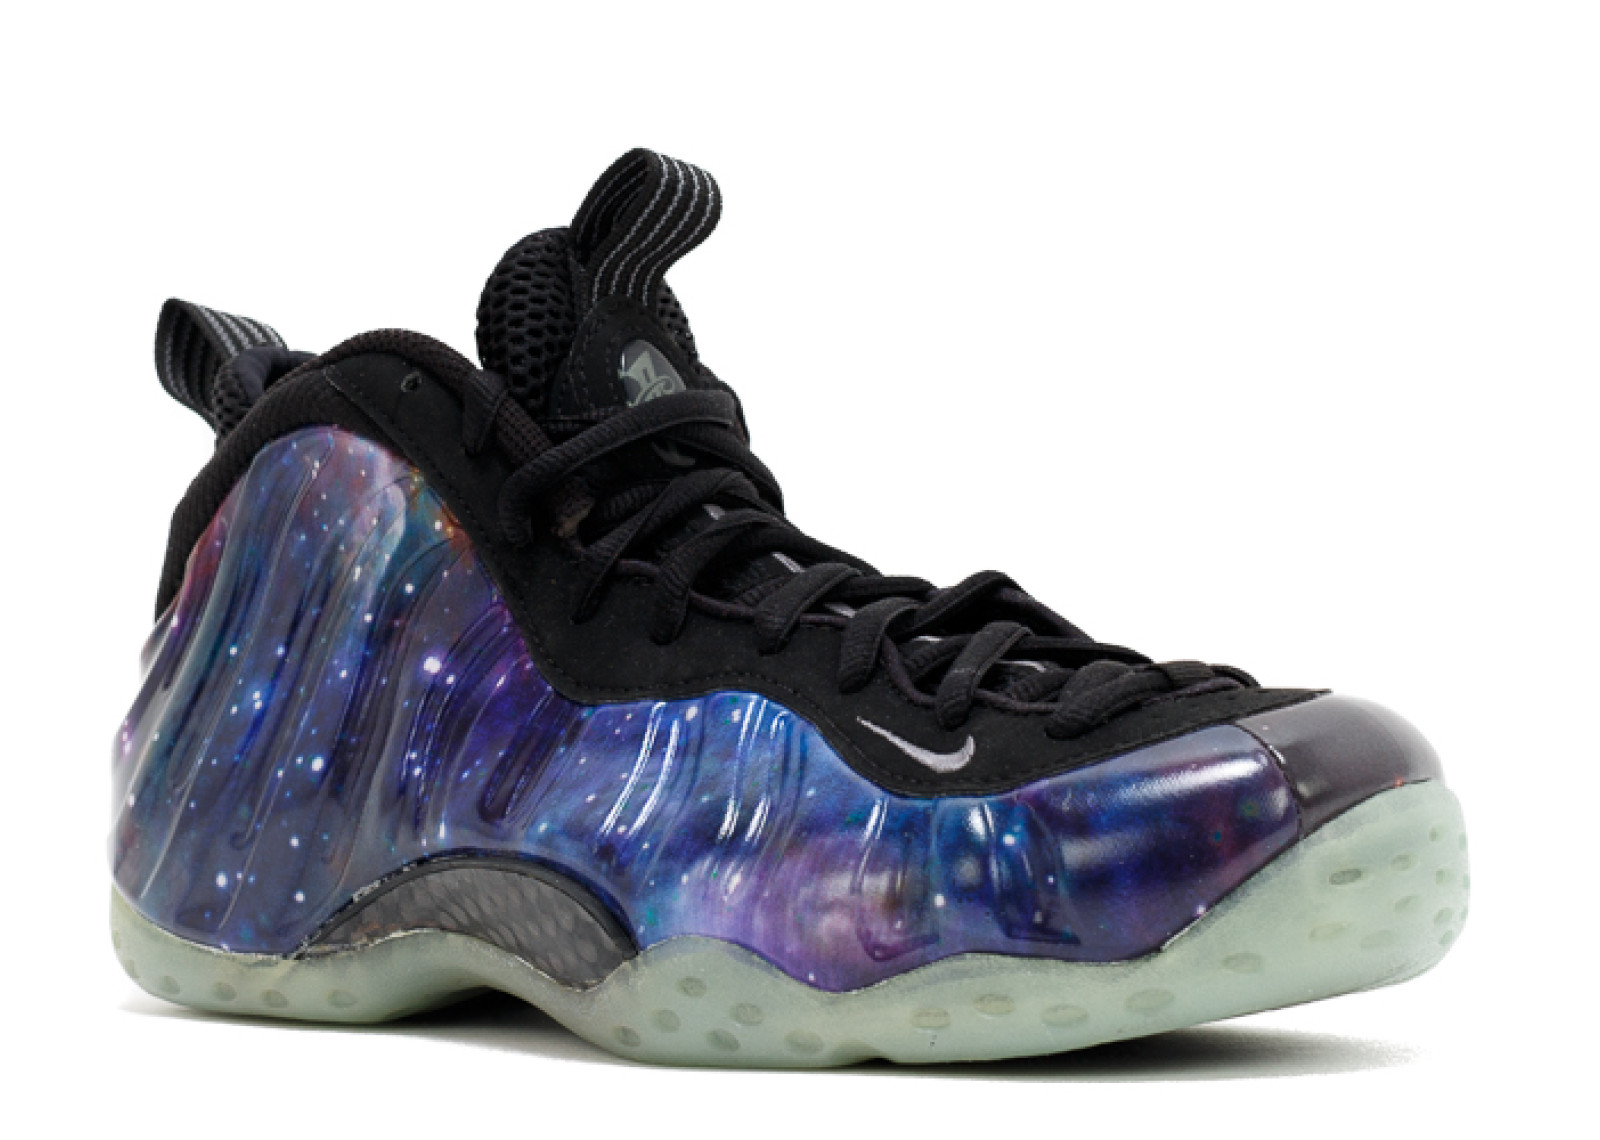 92e1b85fff0cf Nike - Men - Air Foamposite One Nrg  Galaxy  - 521286-800 - Size 8